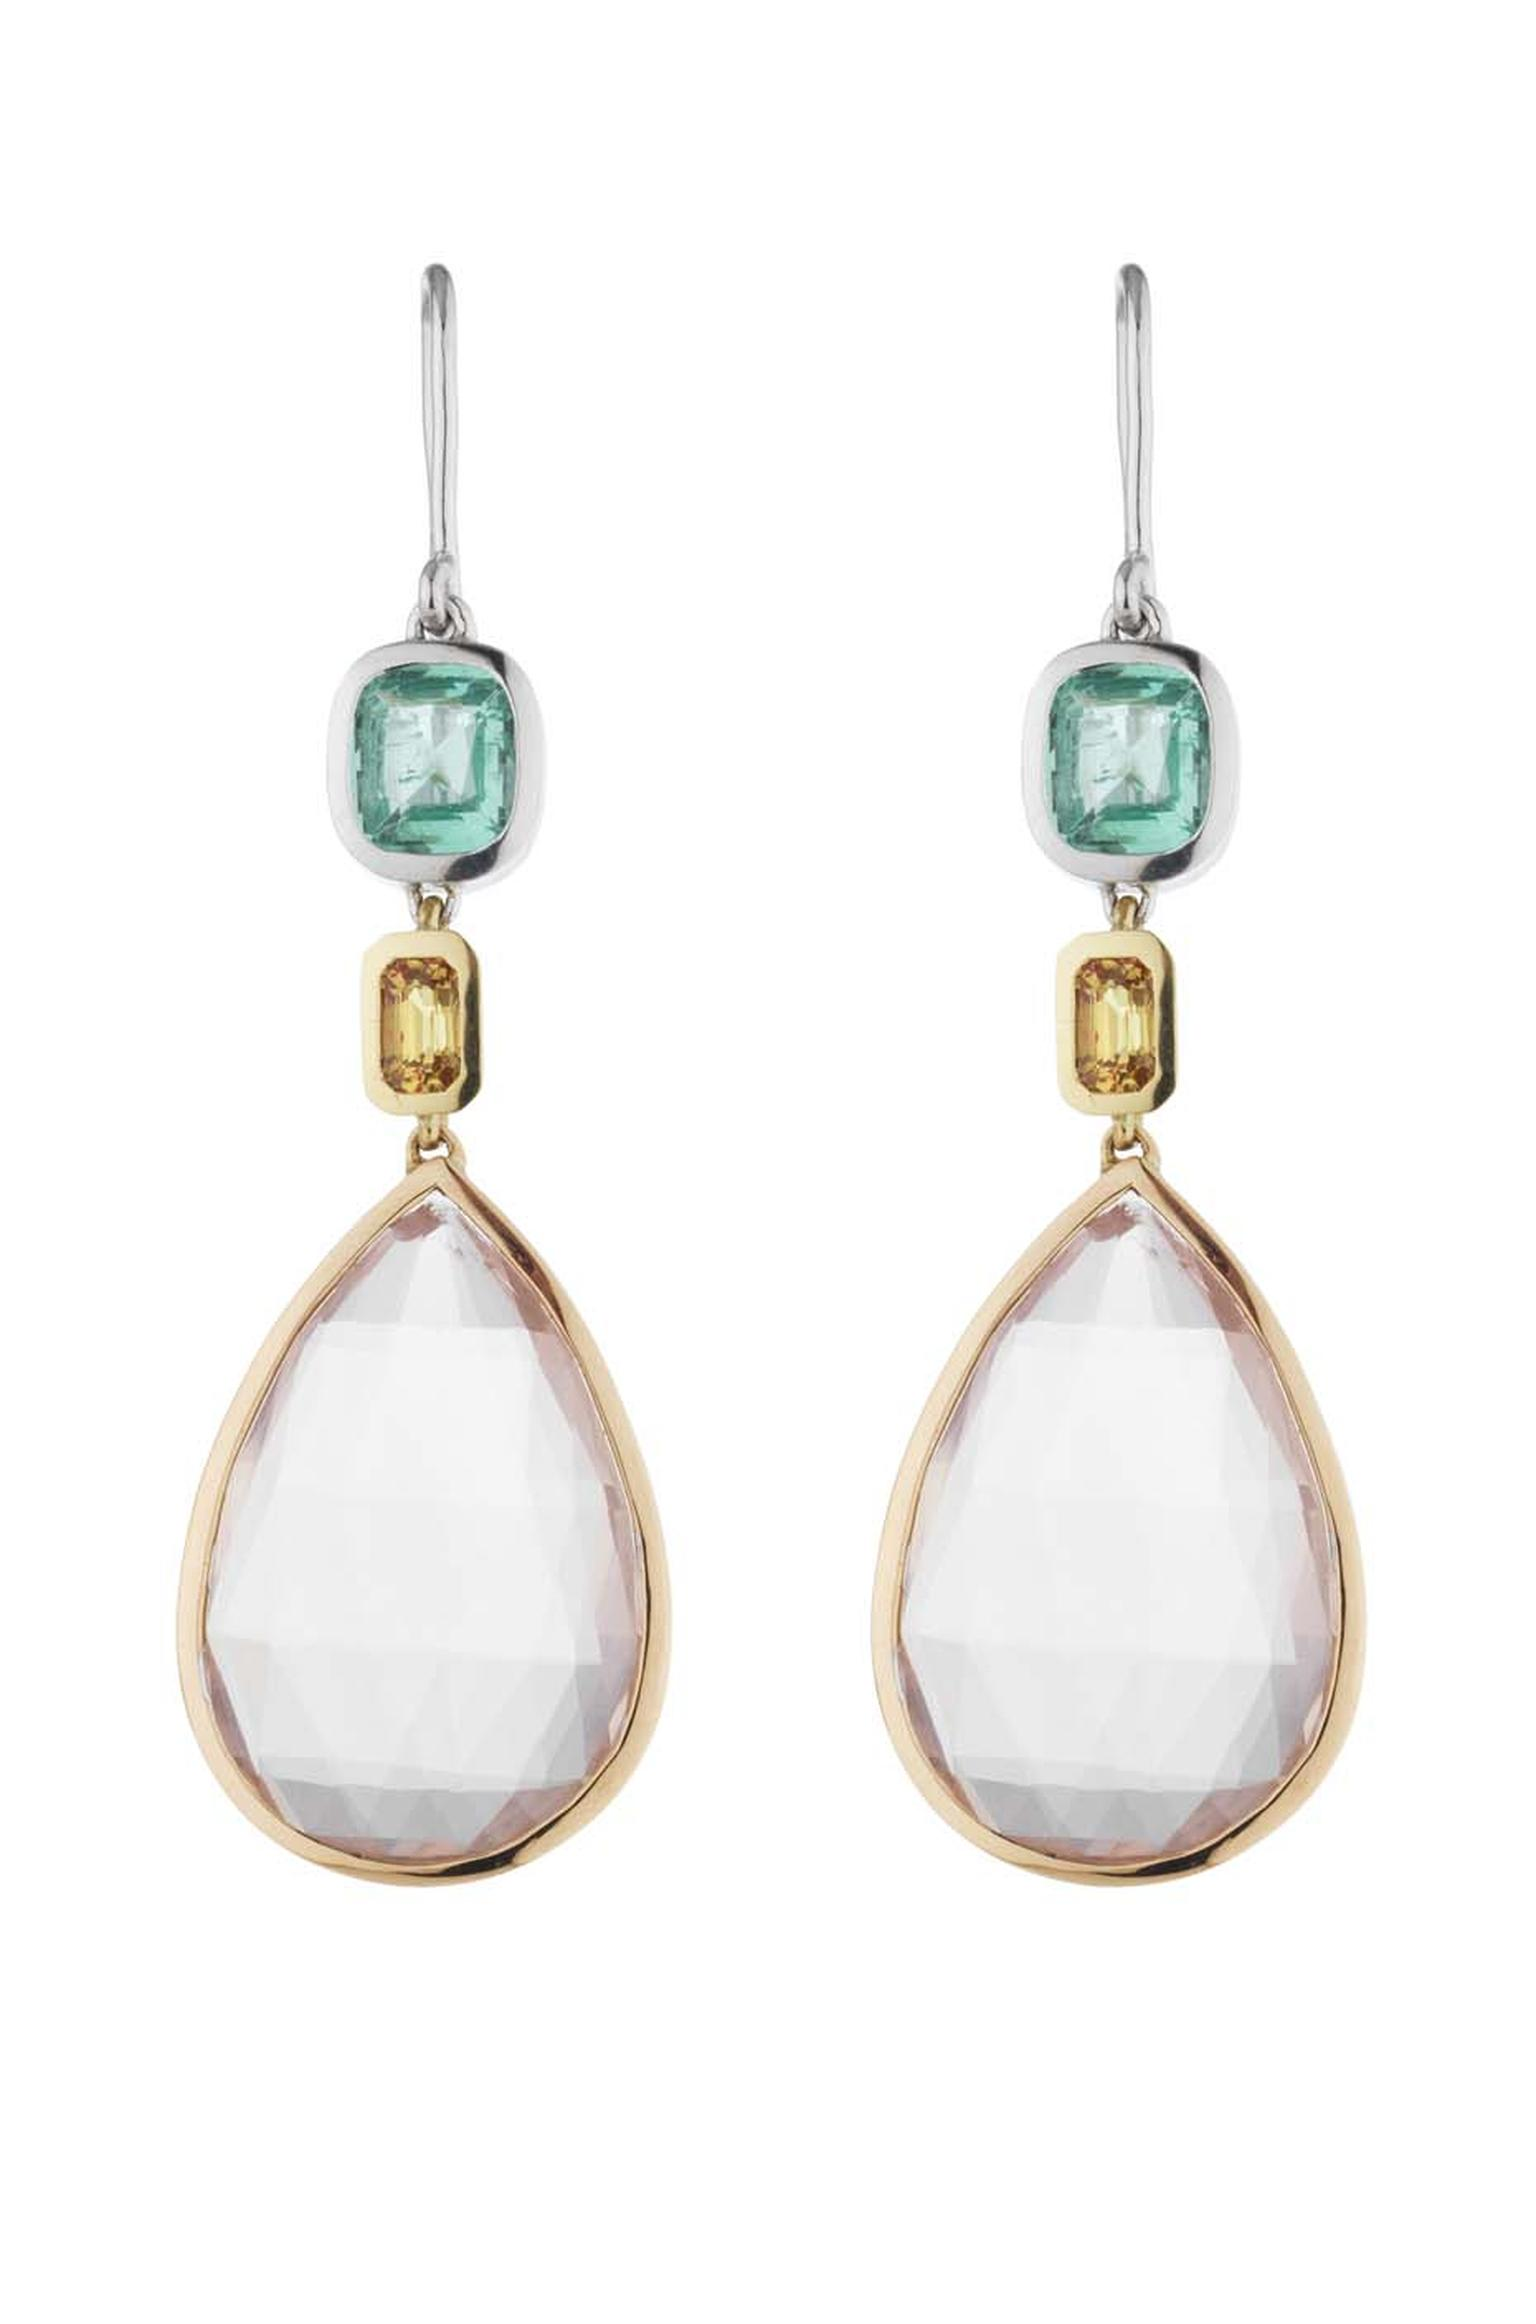 Holts London jewellery collection Sloane earrings with chalcedony drops set in mixed metal with a cushion-cut emerald and yellow sapphires (£3,400).